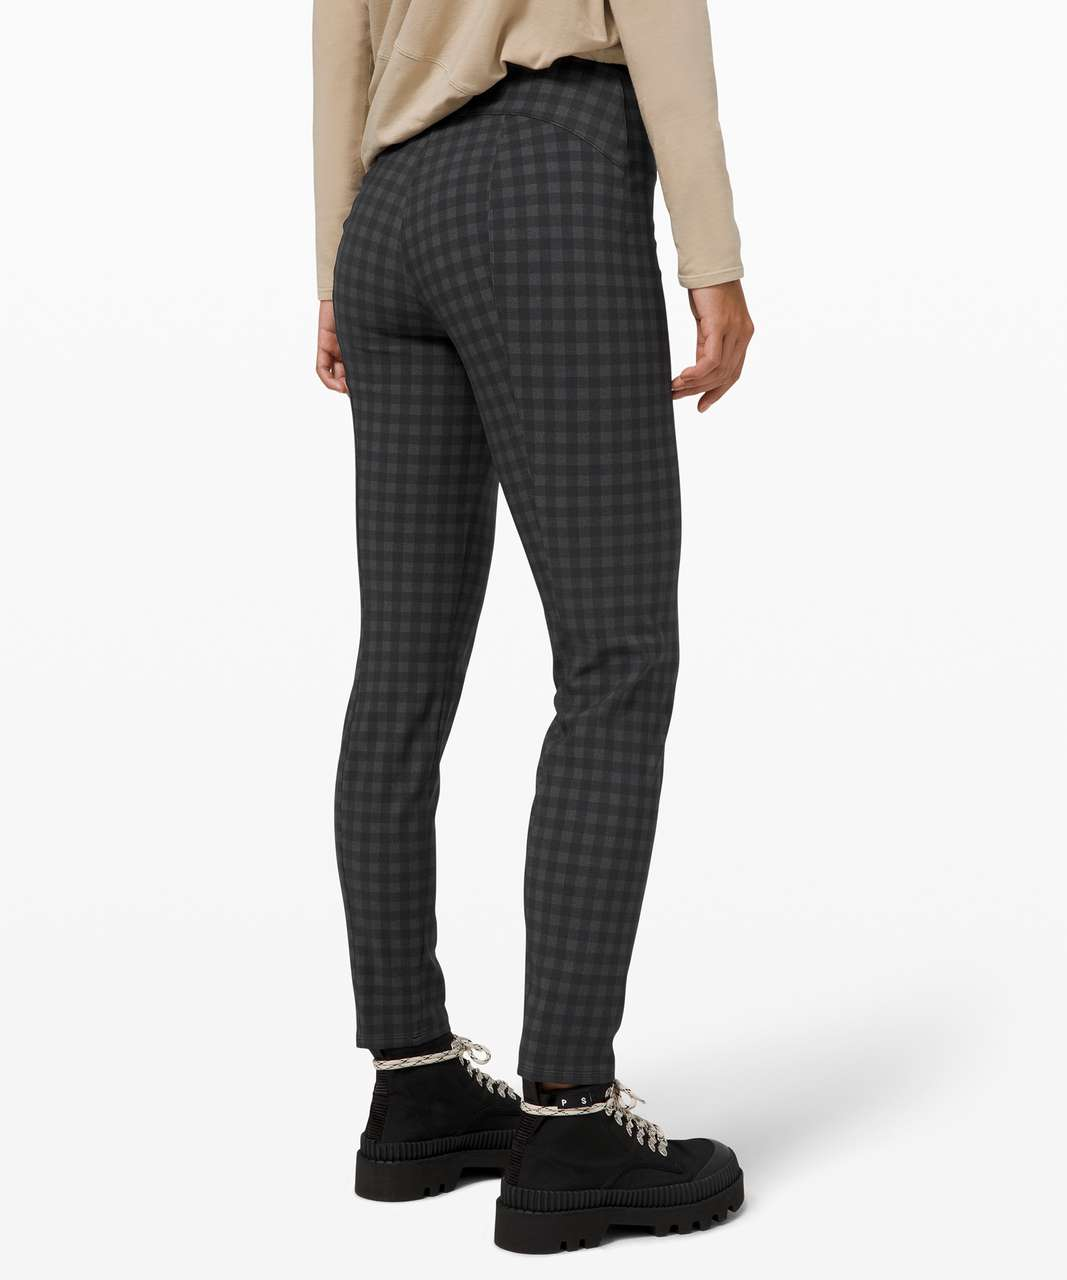 Lululemon Here to There High-Rise 7/8 Pant - Brighton Buffalo Print Graphite Grey Black / Black